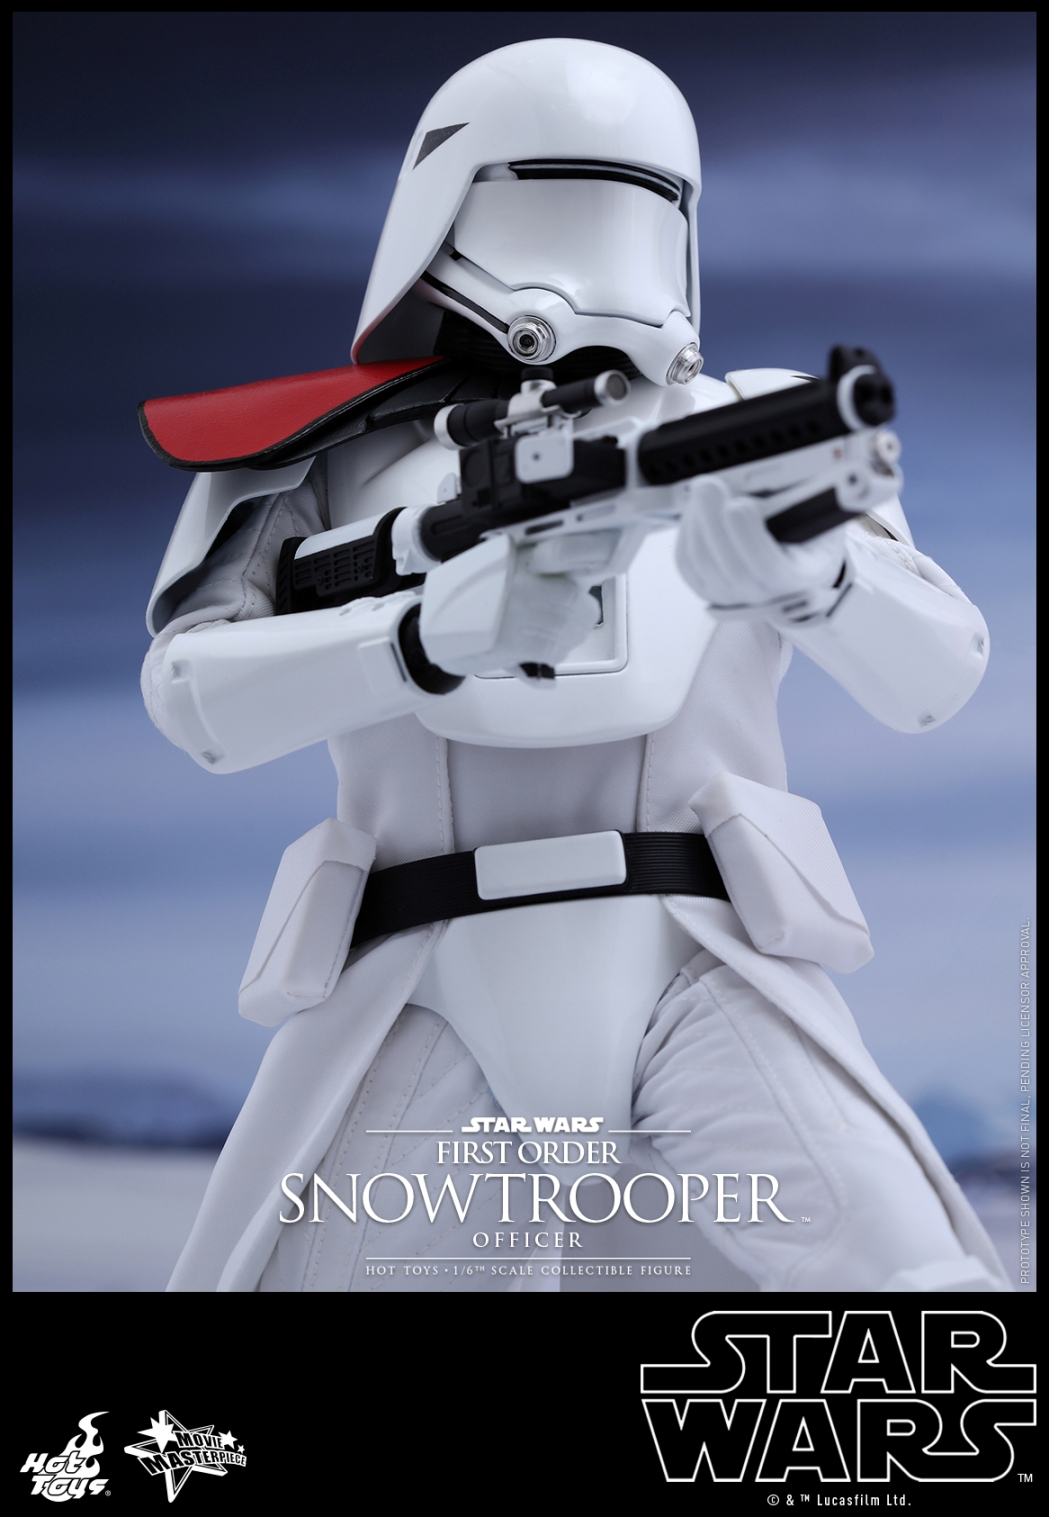 Hot Toys - Star Wars - The Force Awakens - The First Order Snowtrooper Officer Collectible Figure_PR4